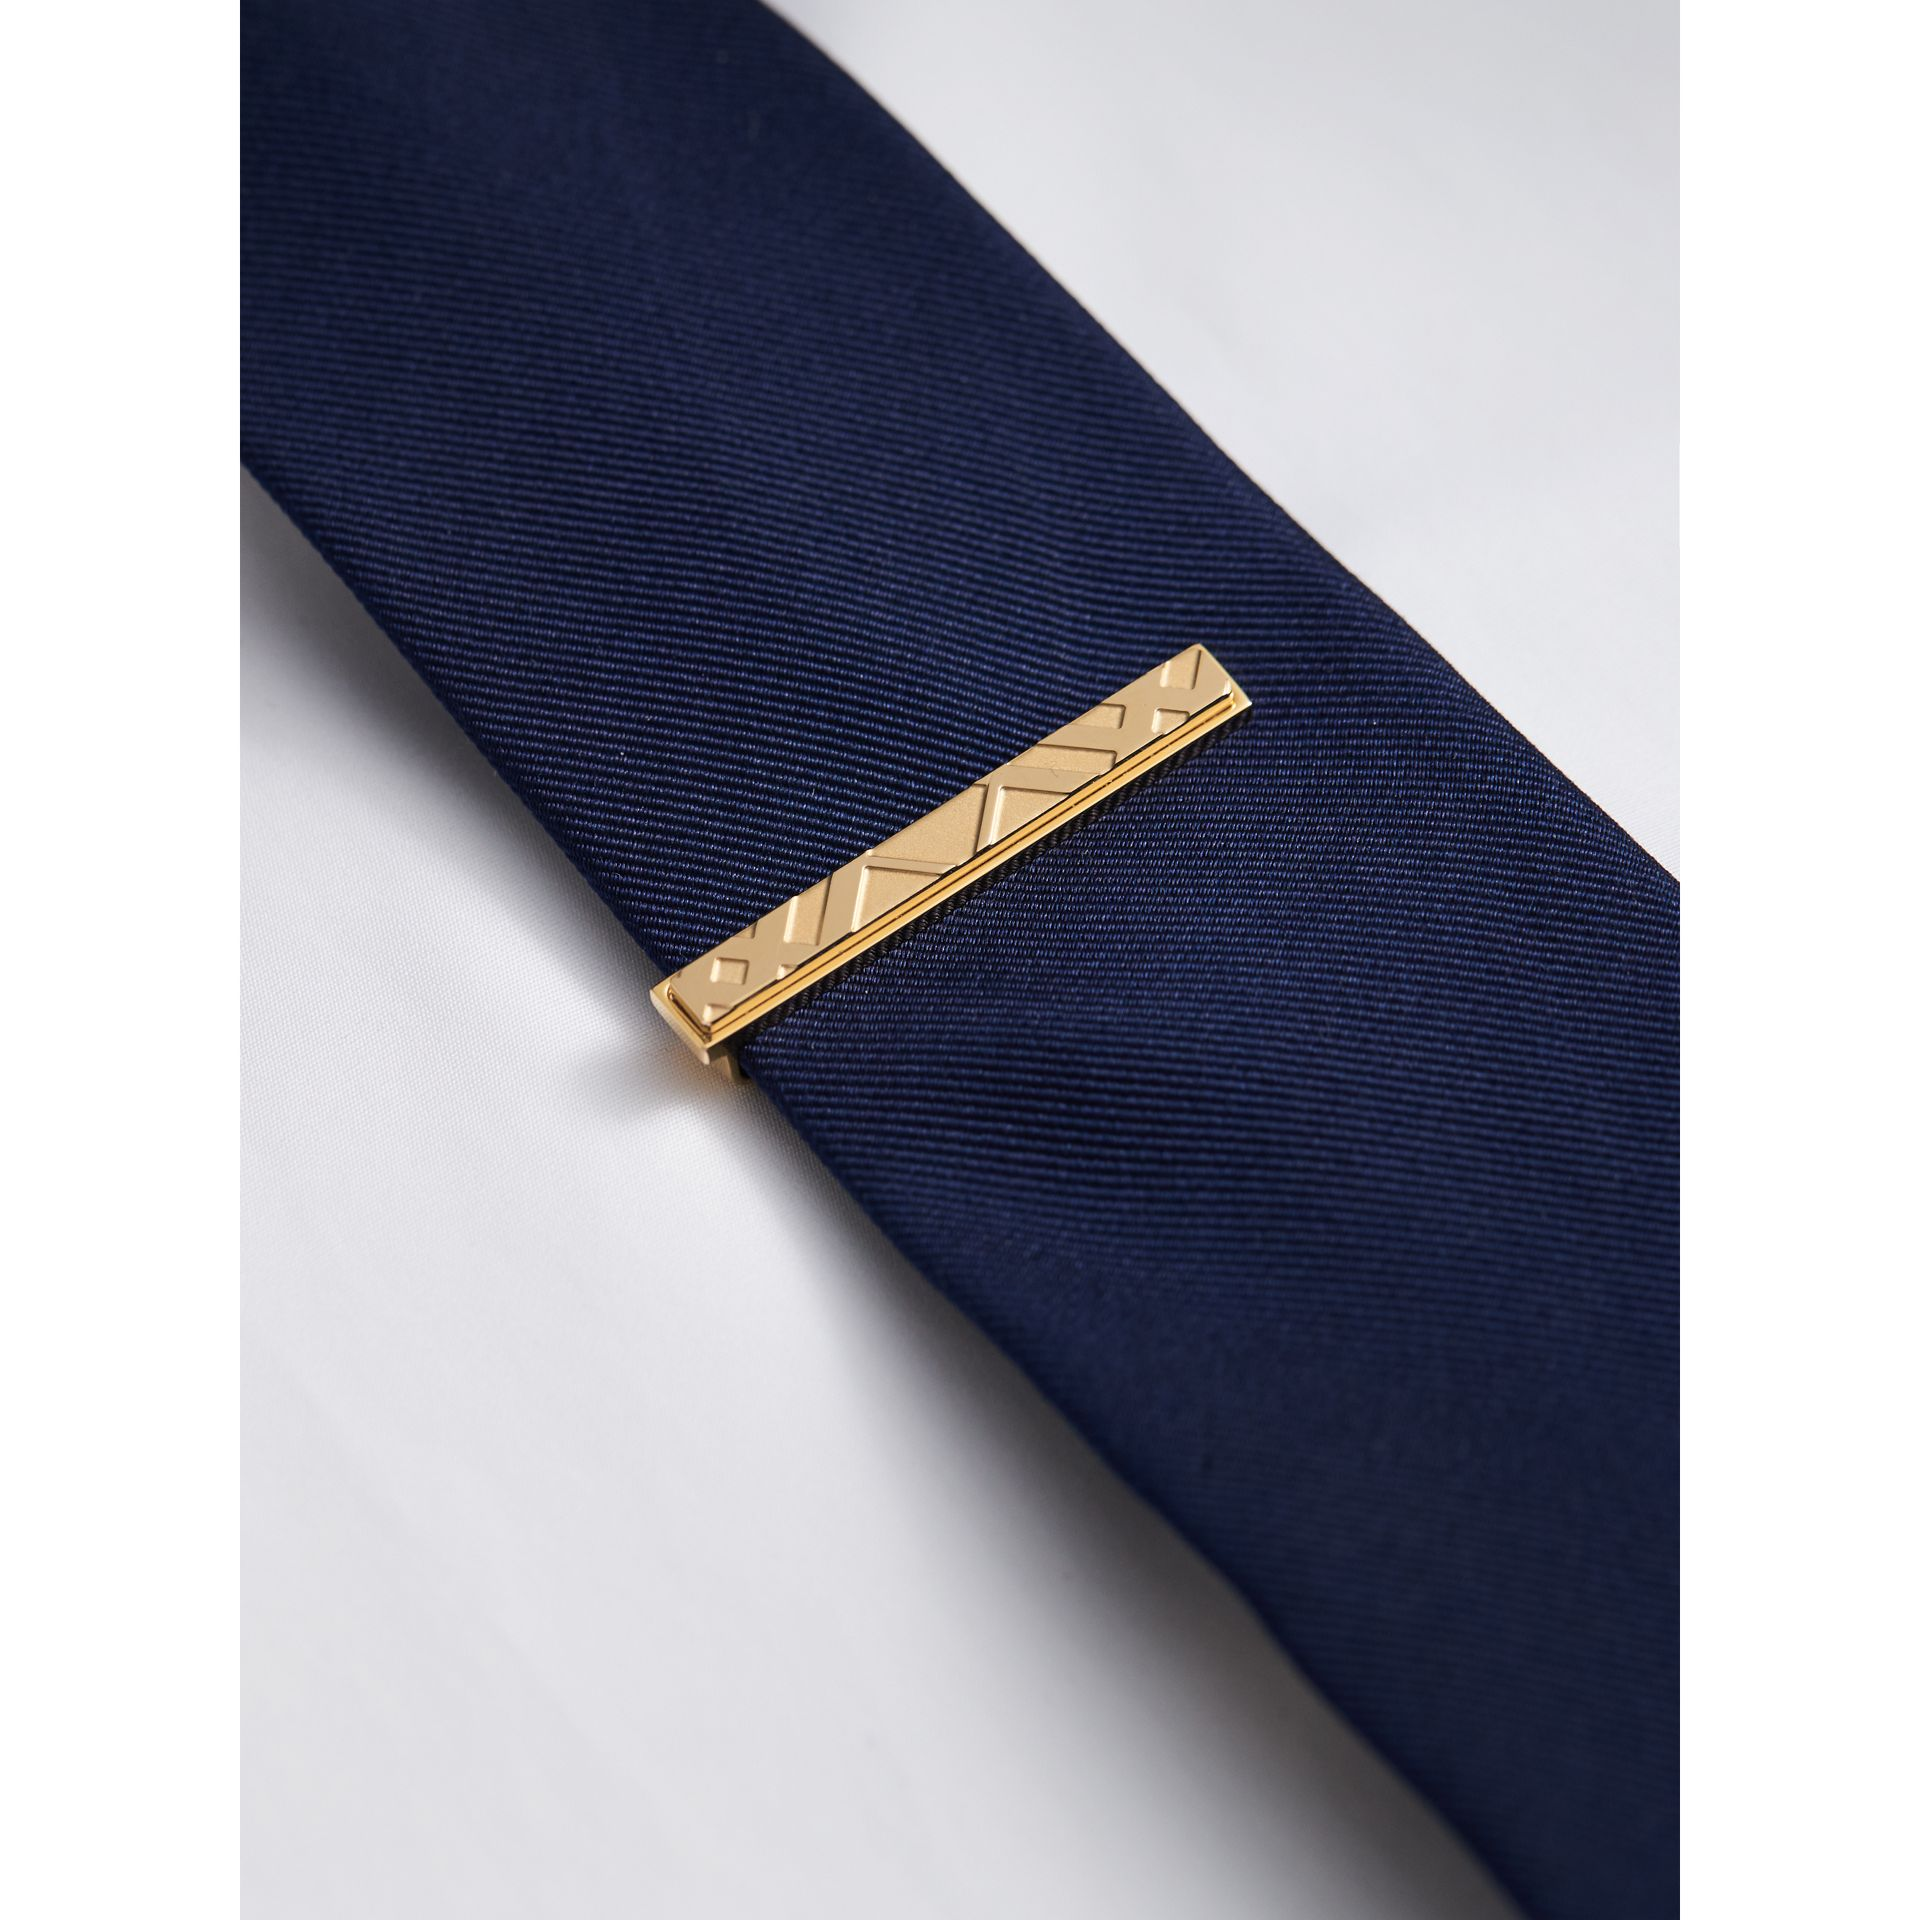 Check-engraved Tie Bar in Pale Gold - Men | Burberry - gallery image 2